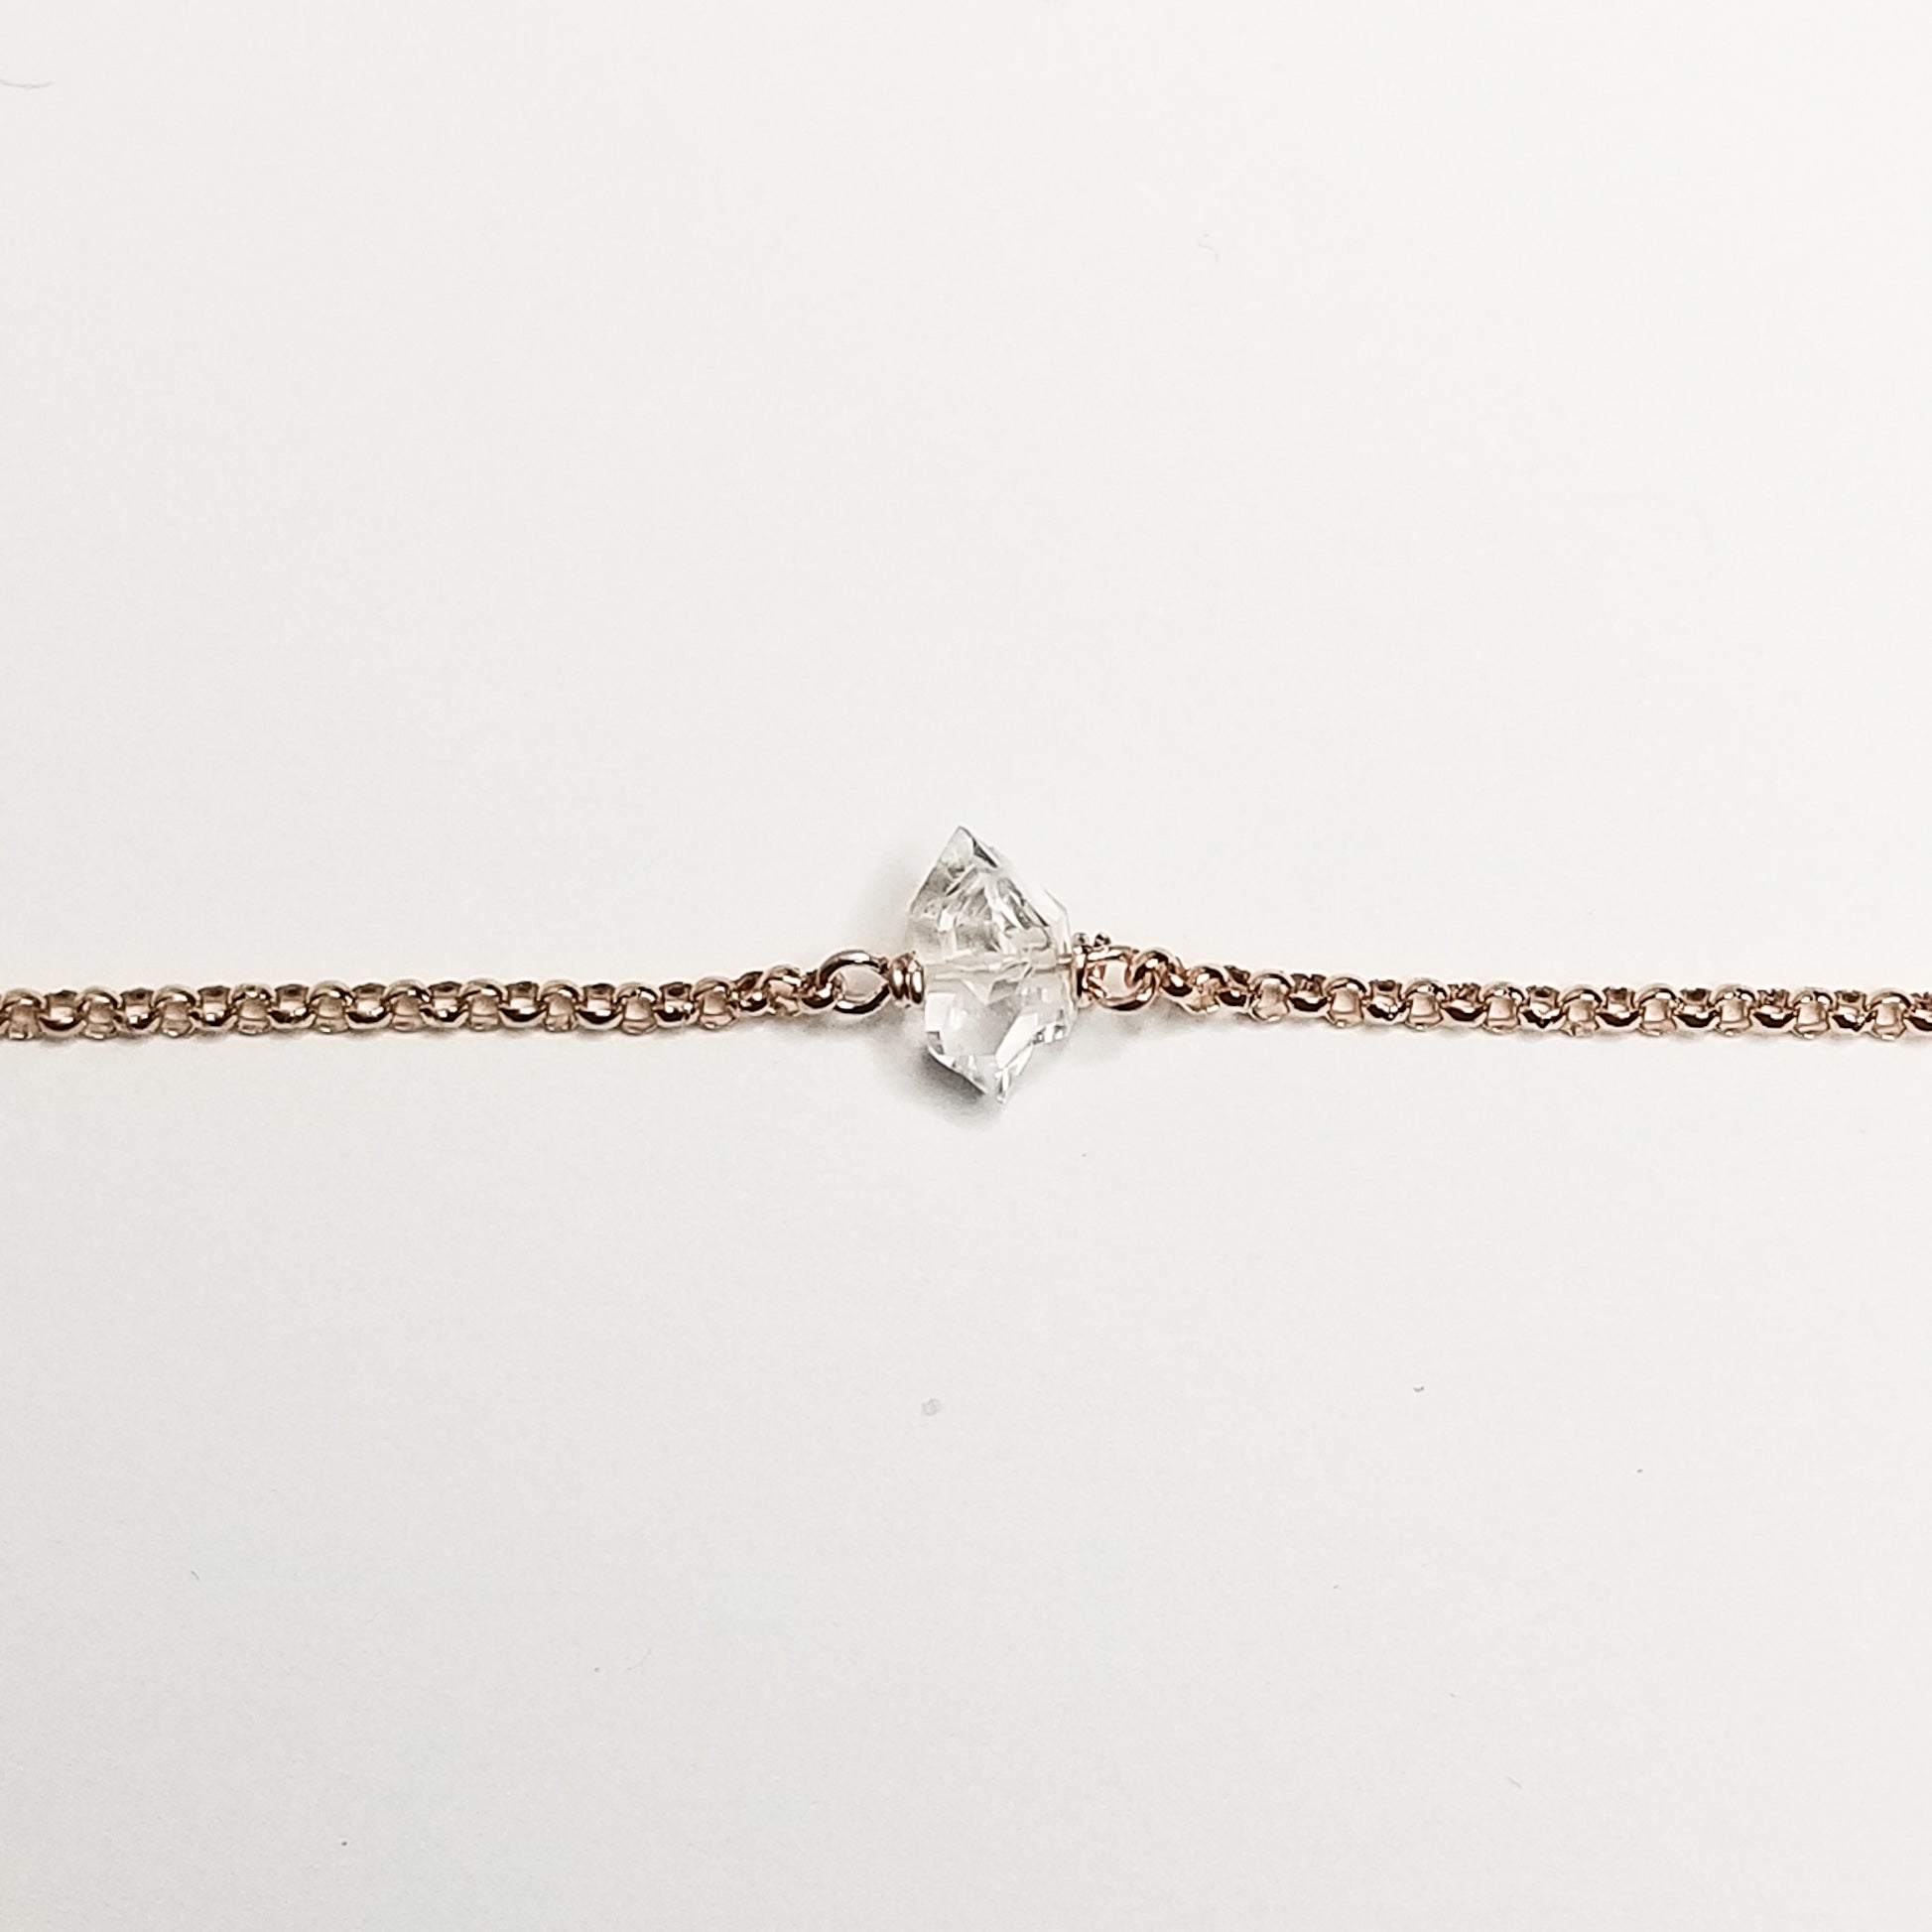 Herkimer diamond bracelet - 14k rose gold filled